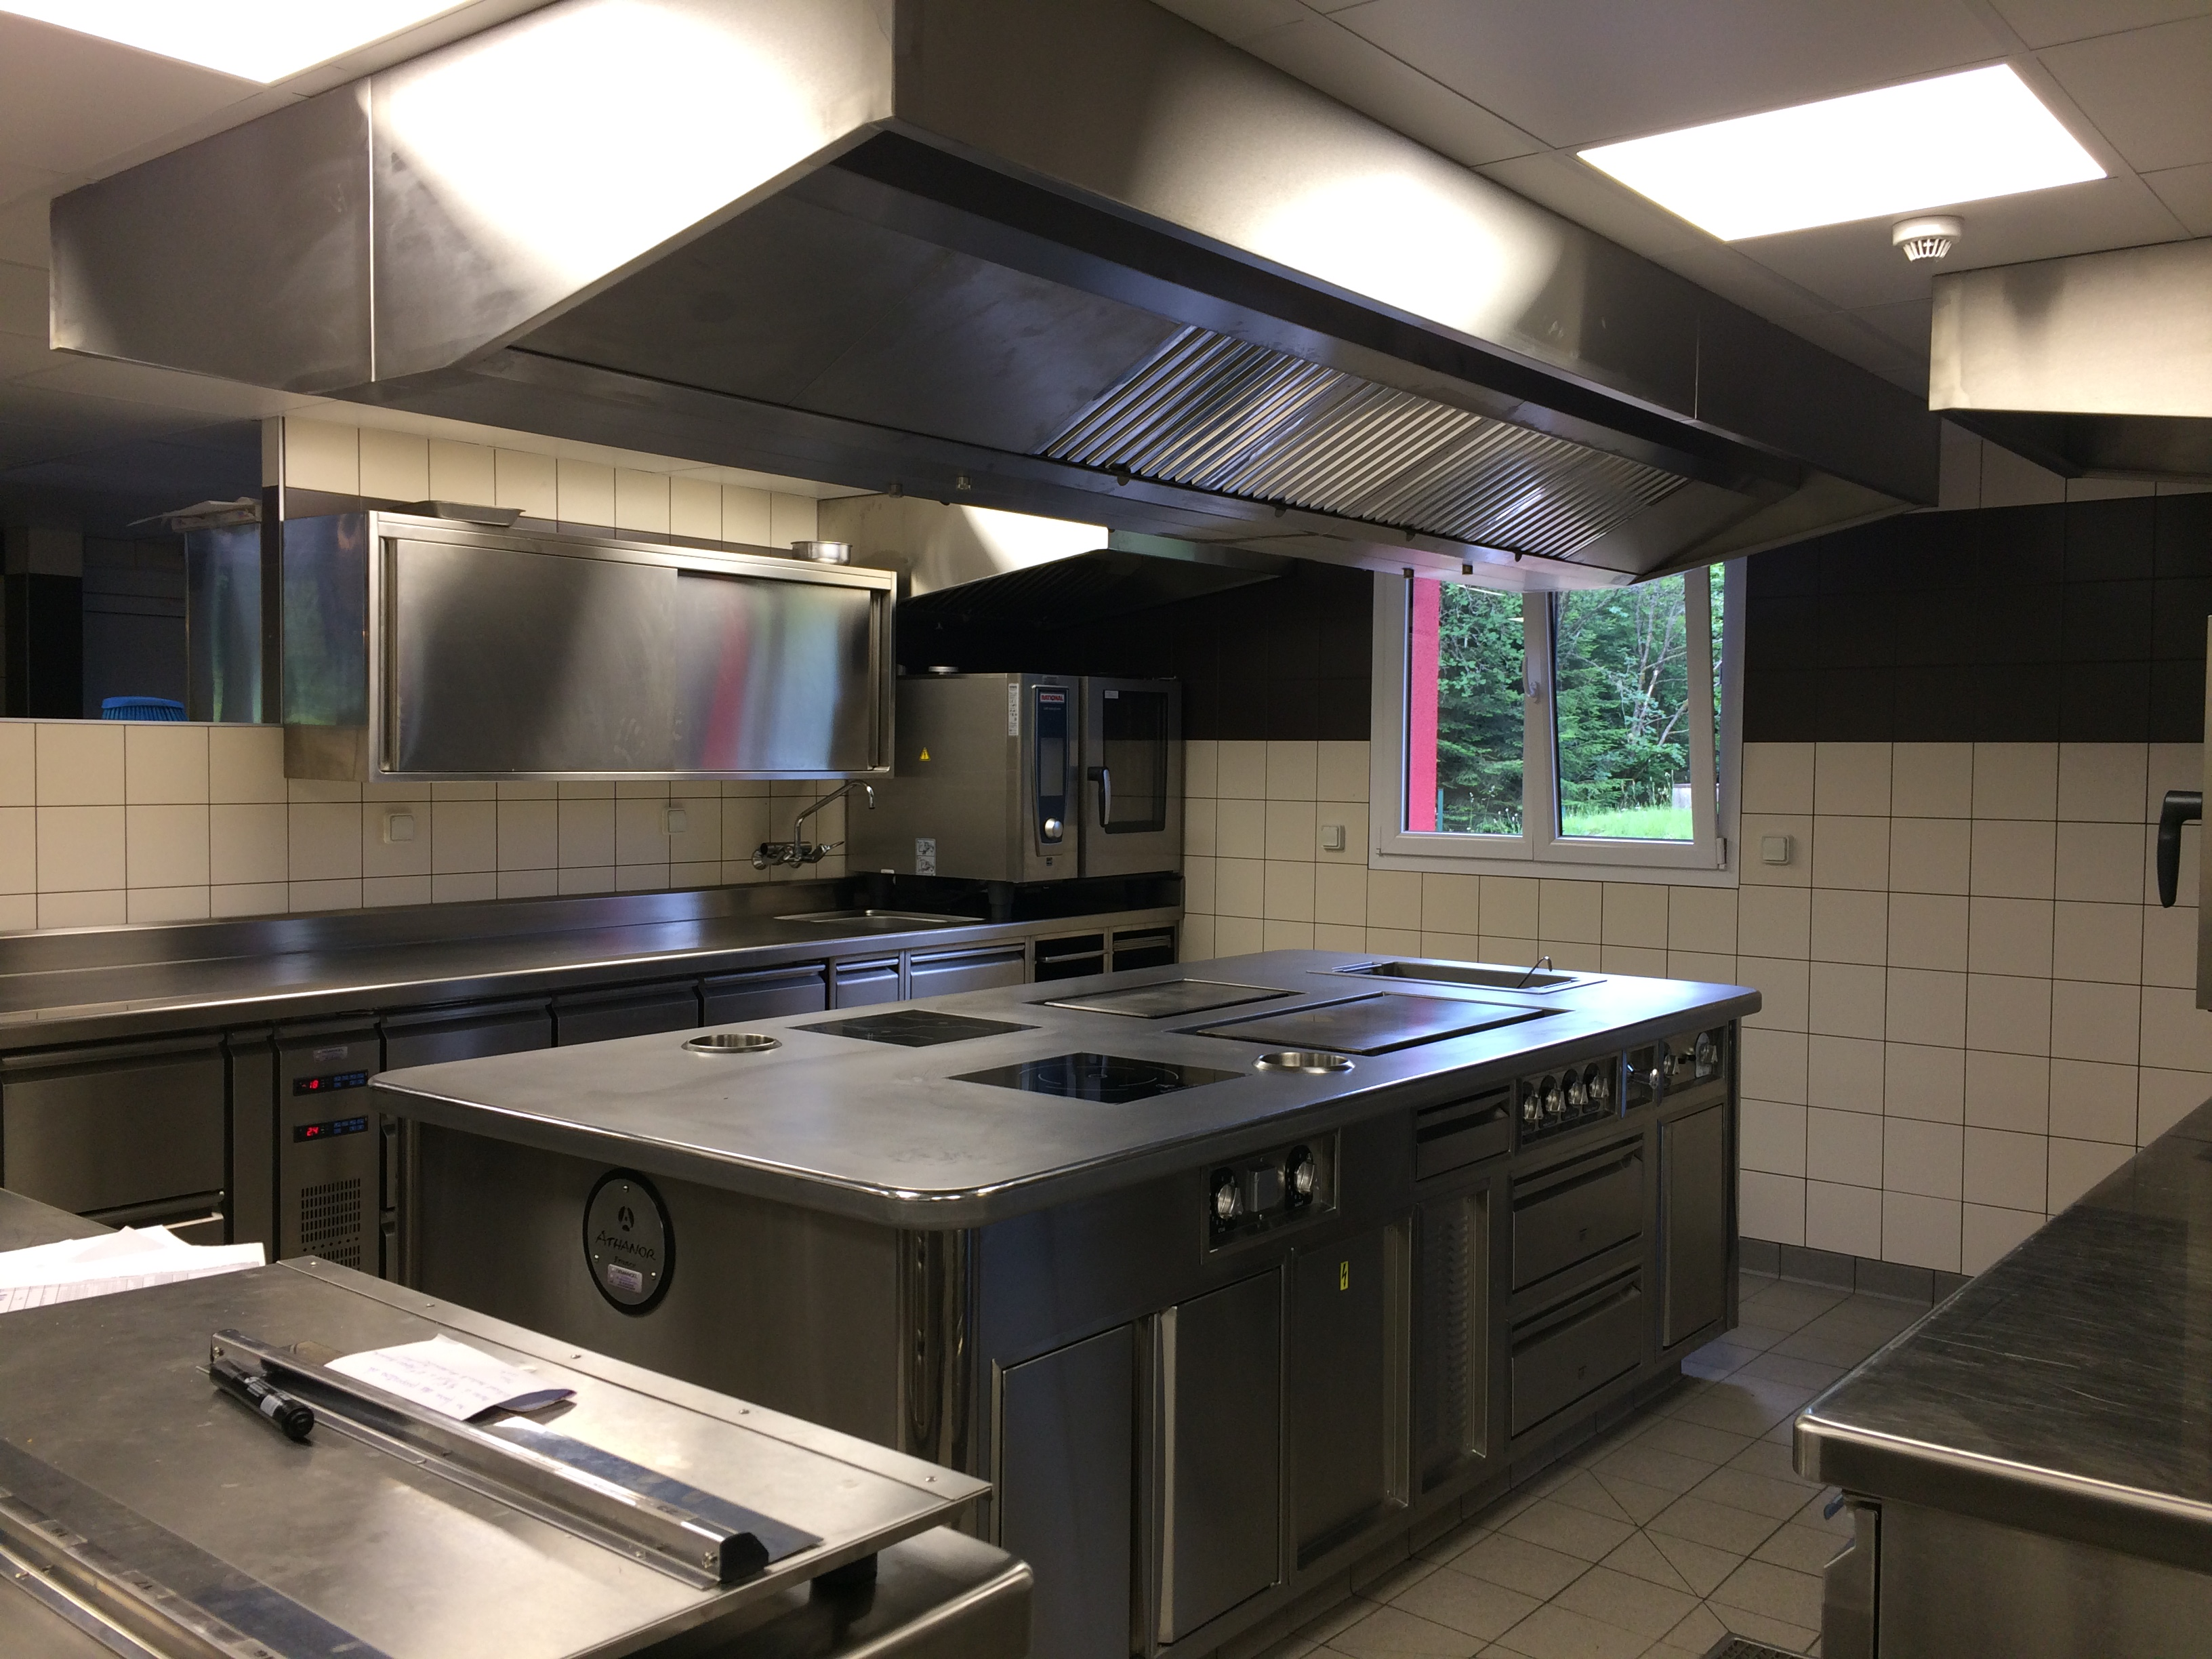 A new kitchen for Les Jardins de Sophie